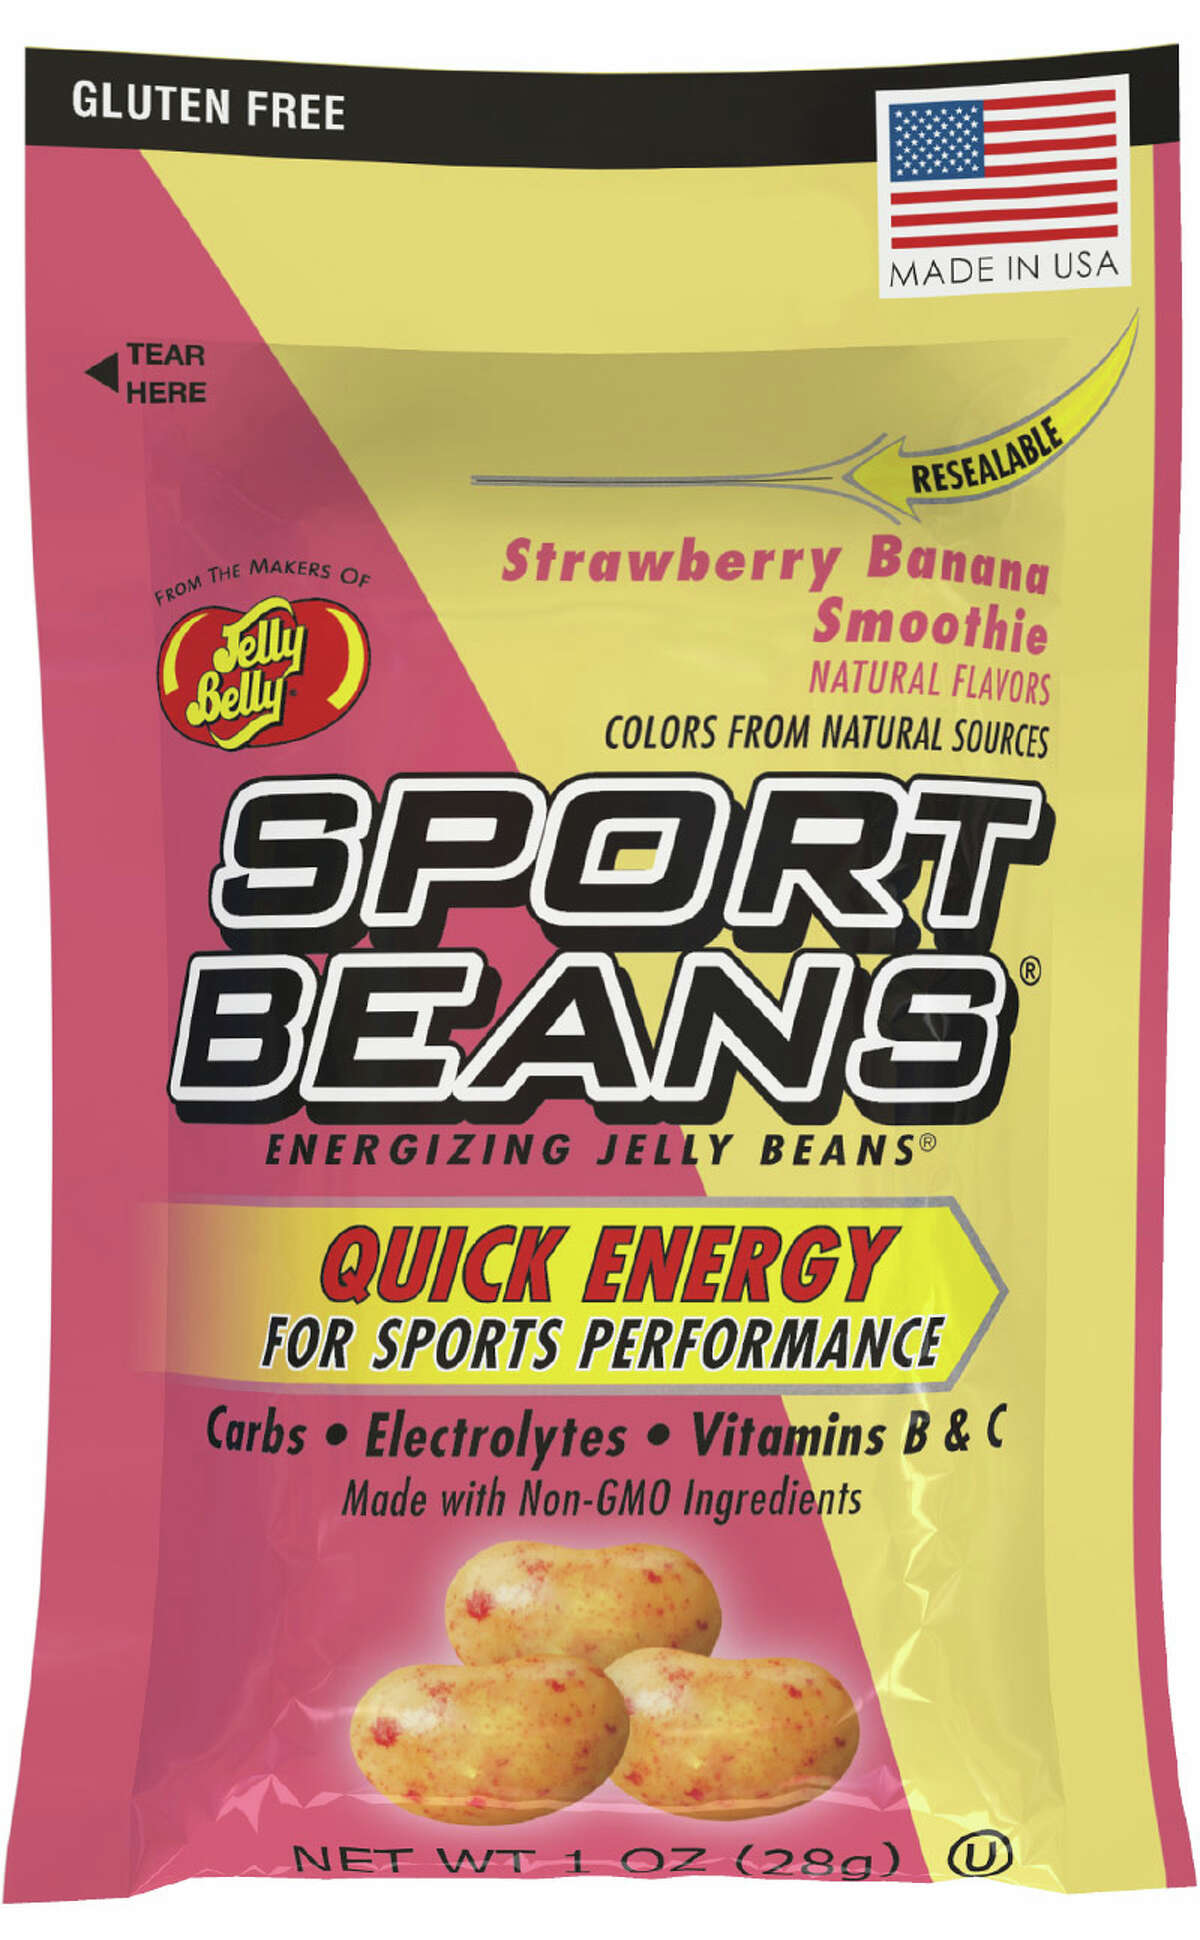 The nutritional panel on Jelly Belly Sports Beans indicated a single serving contains 17 grams of sugar.